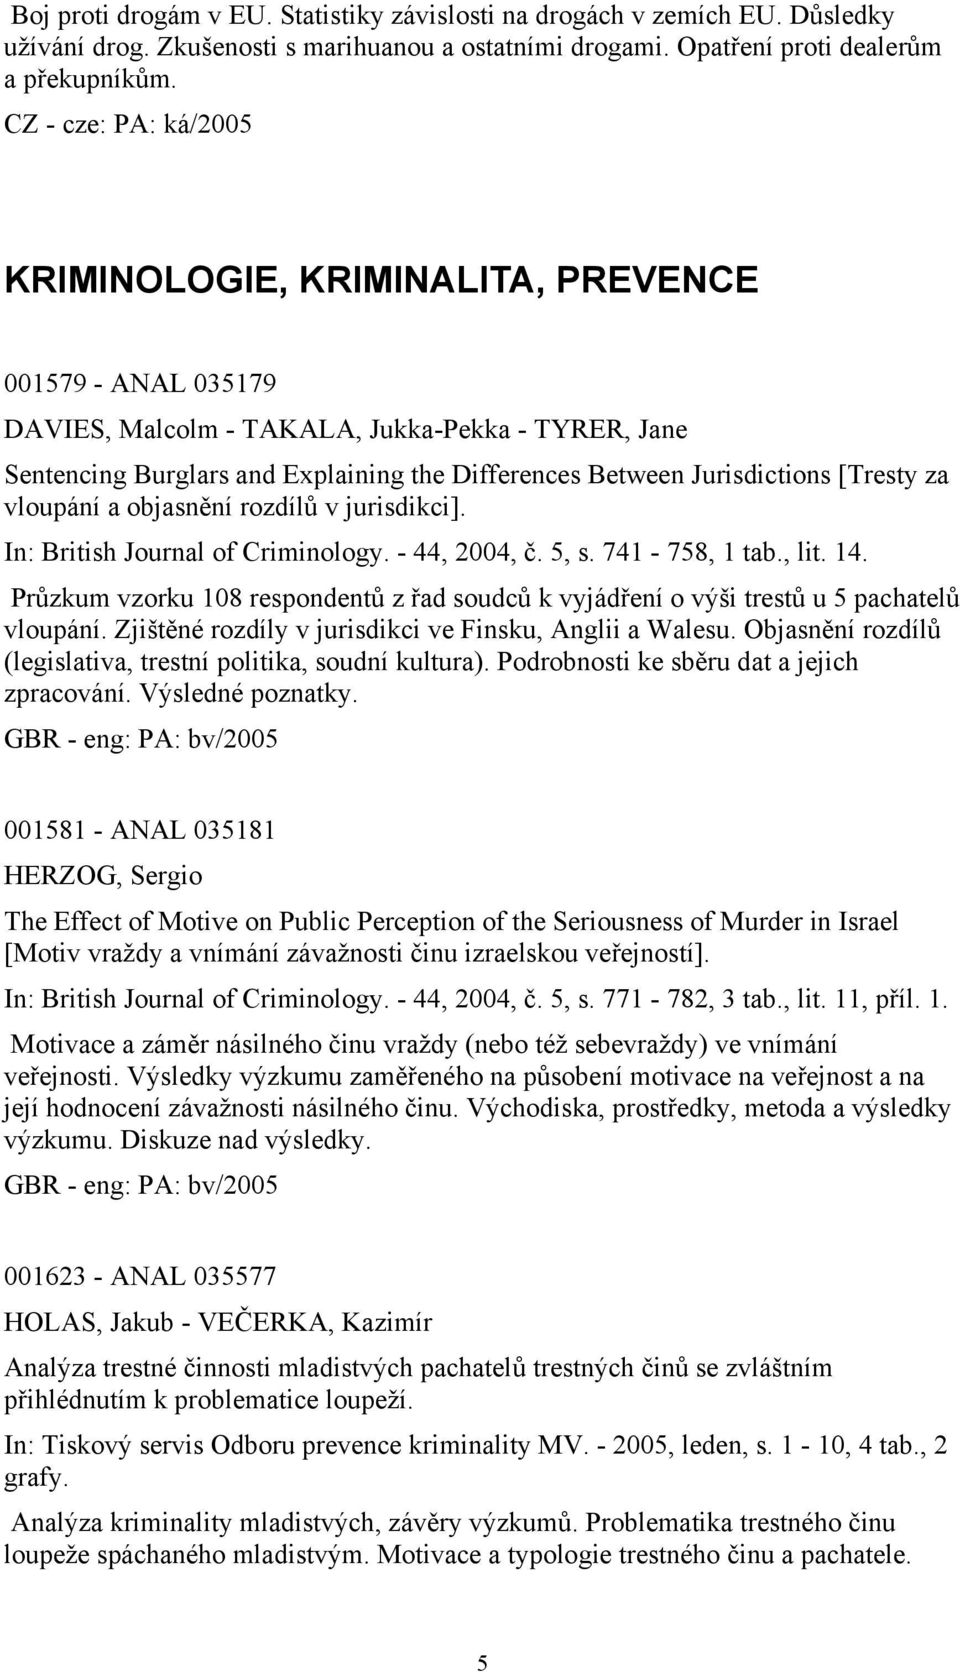 vloupání a objasnění rozdílů v jurisdikci]. In: British Journal of Criminology. - 44, 2004, č. 5, s. 741-758, 1 tab., lit. 14.